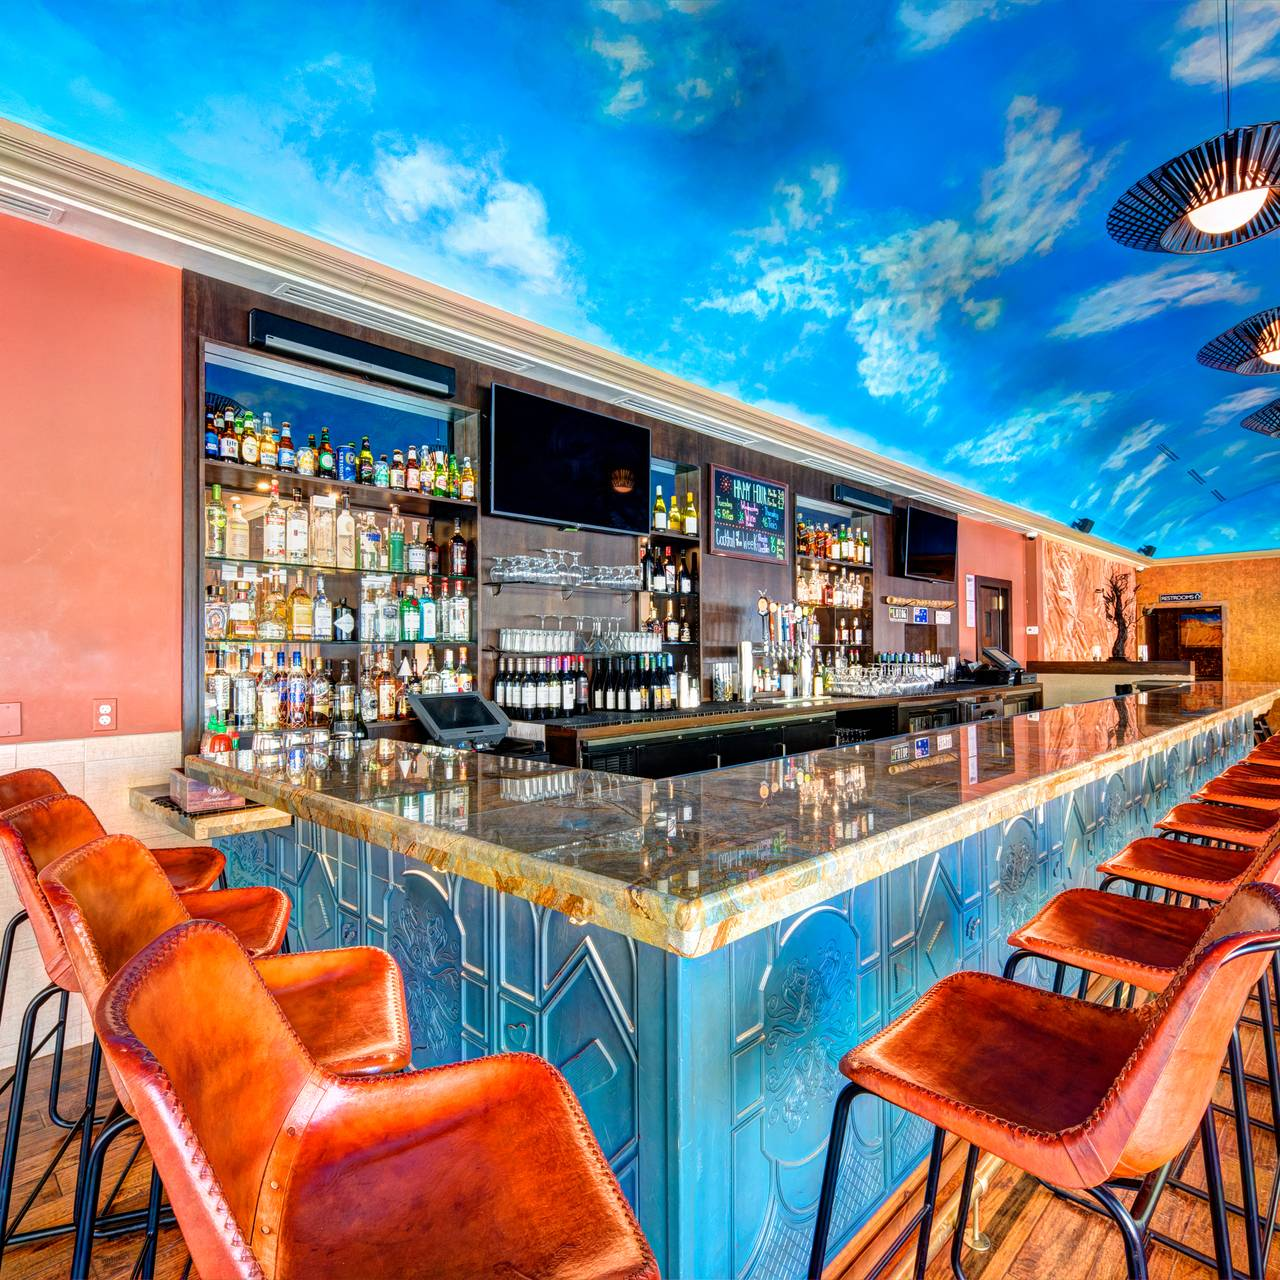 Oz Restaurant and Bar - Arlington, VA | OpenTable